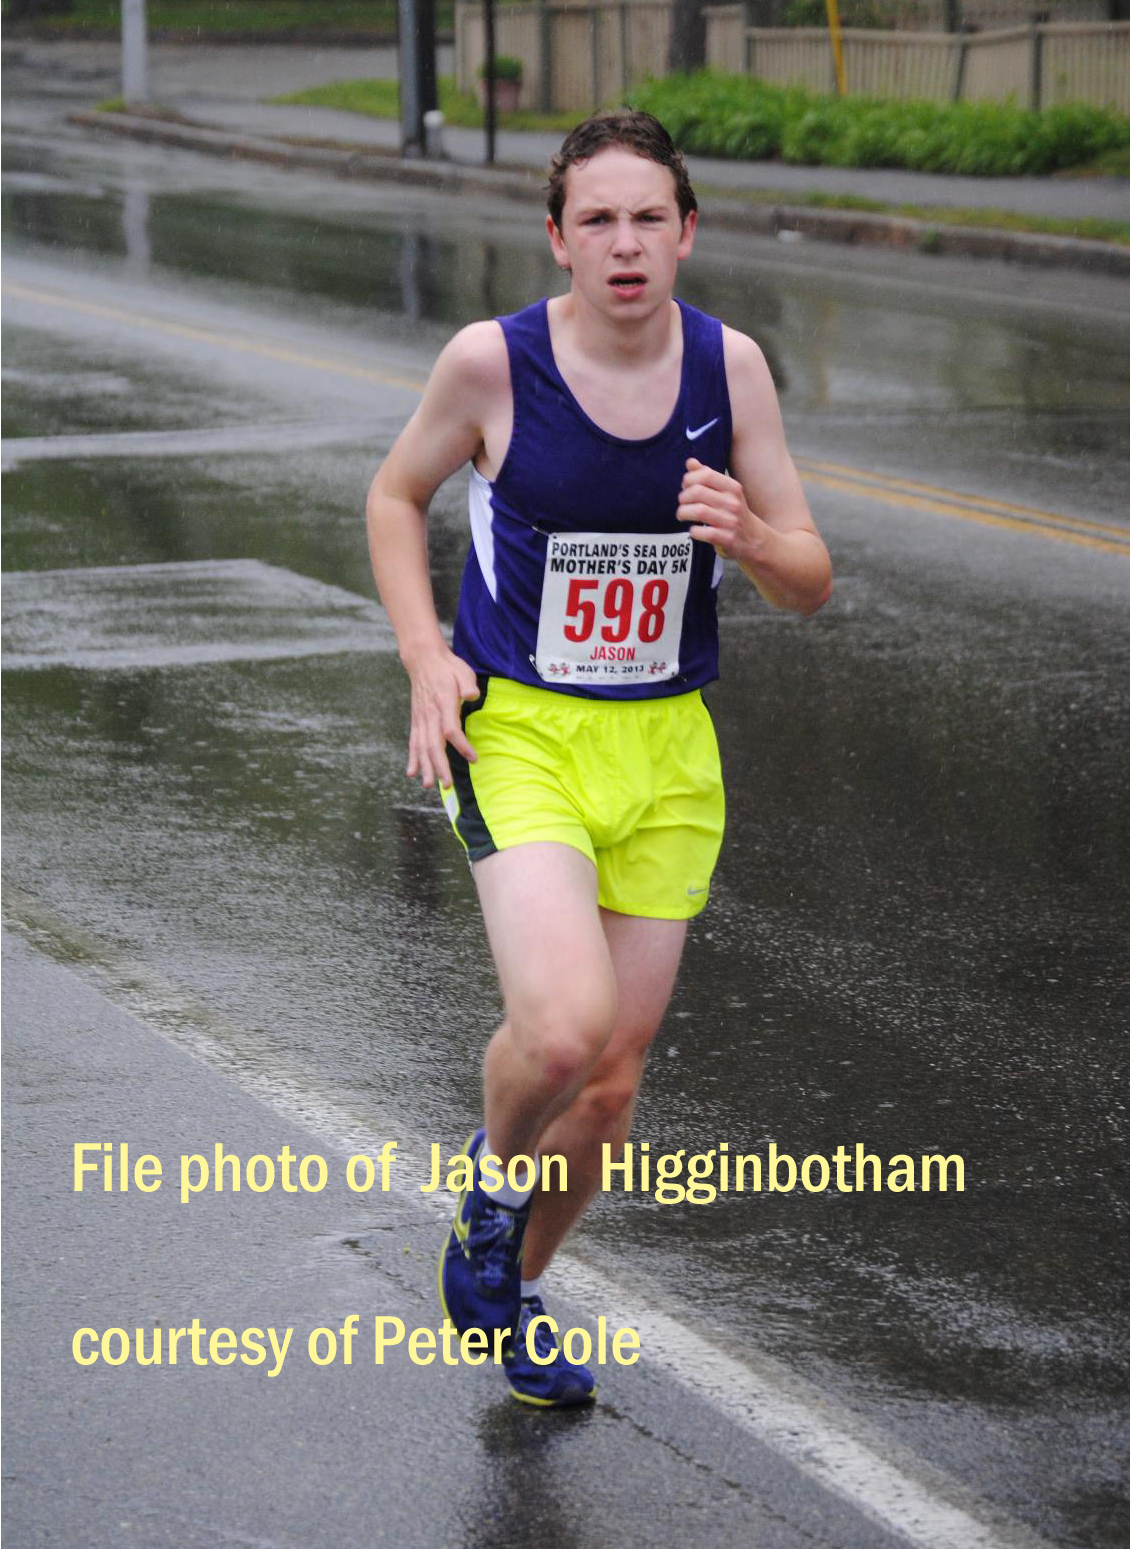 File photo of Jason Higginbotham courtesy of Peter Cole